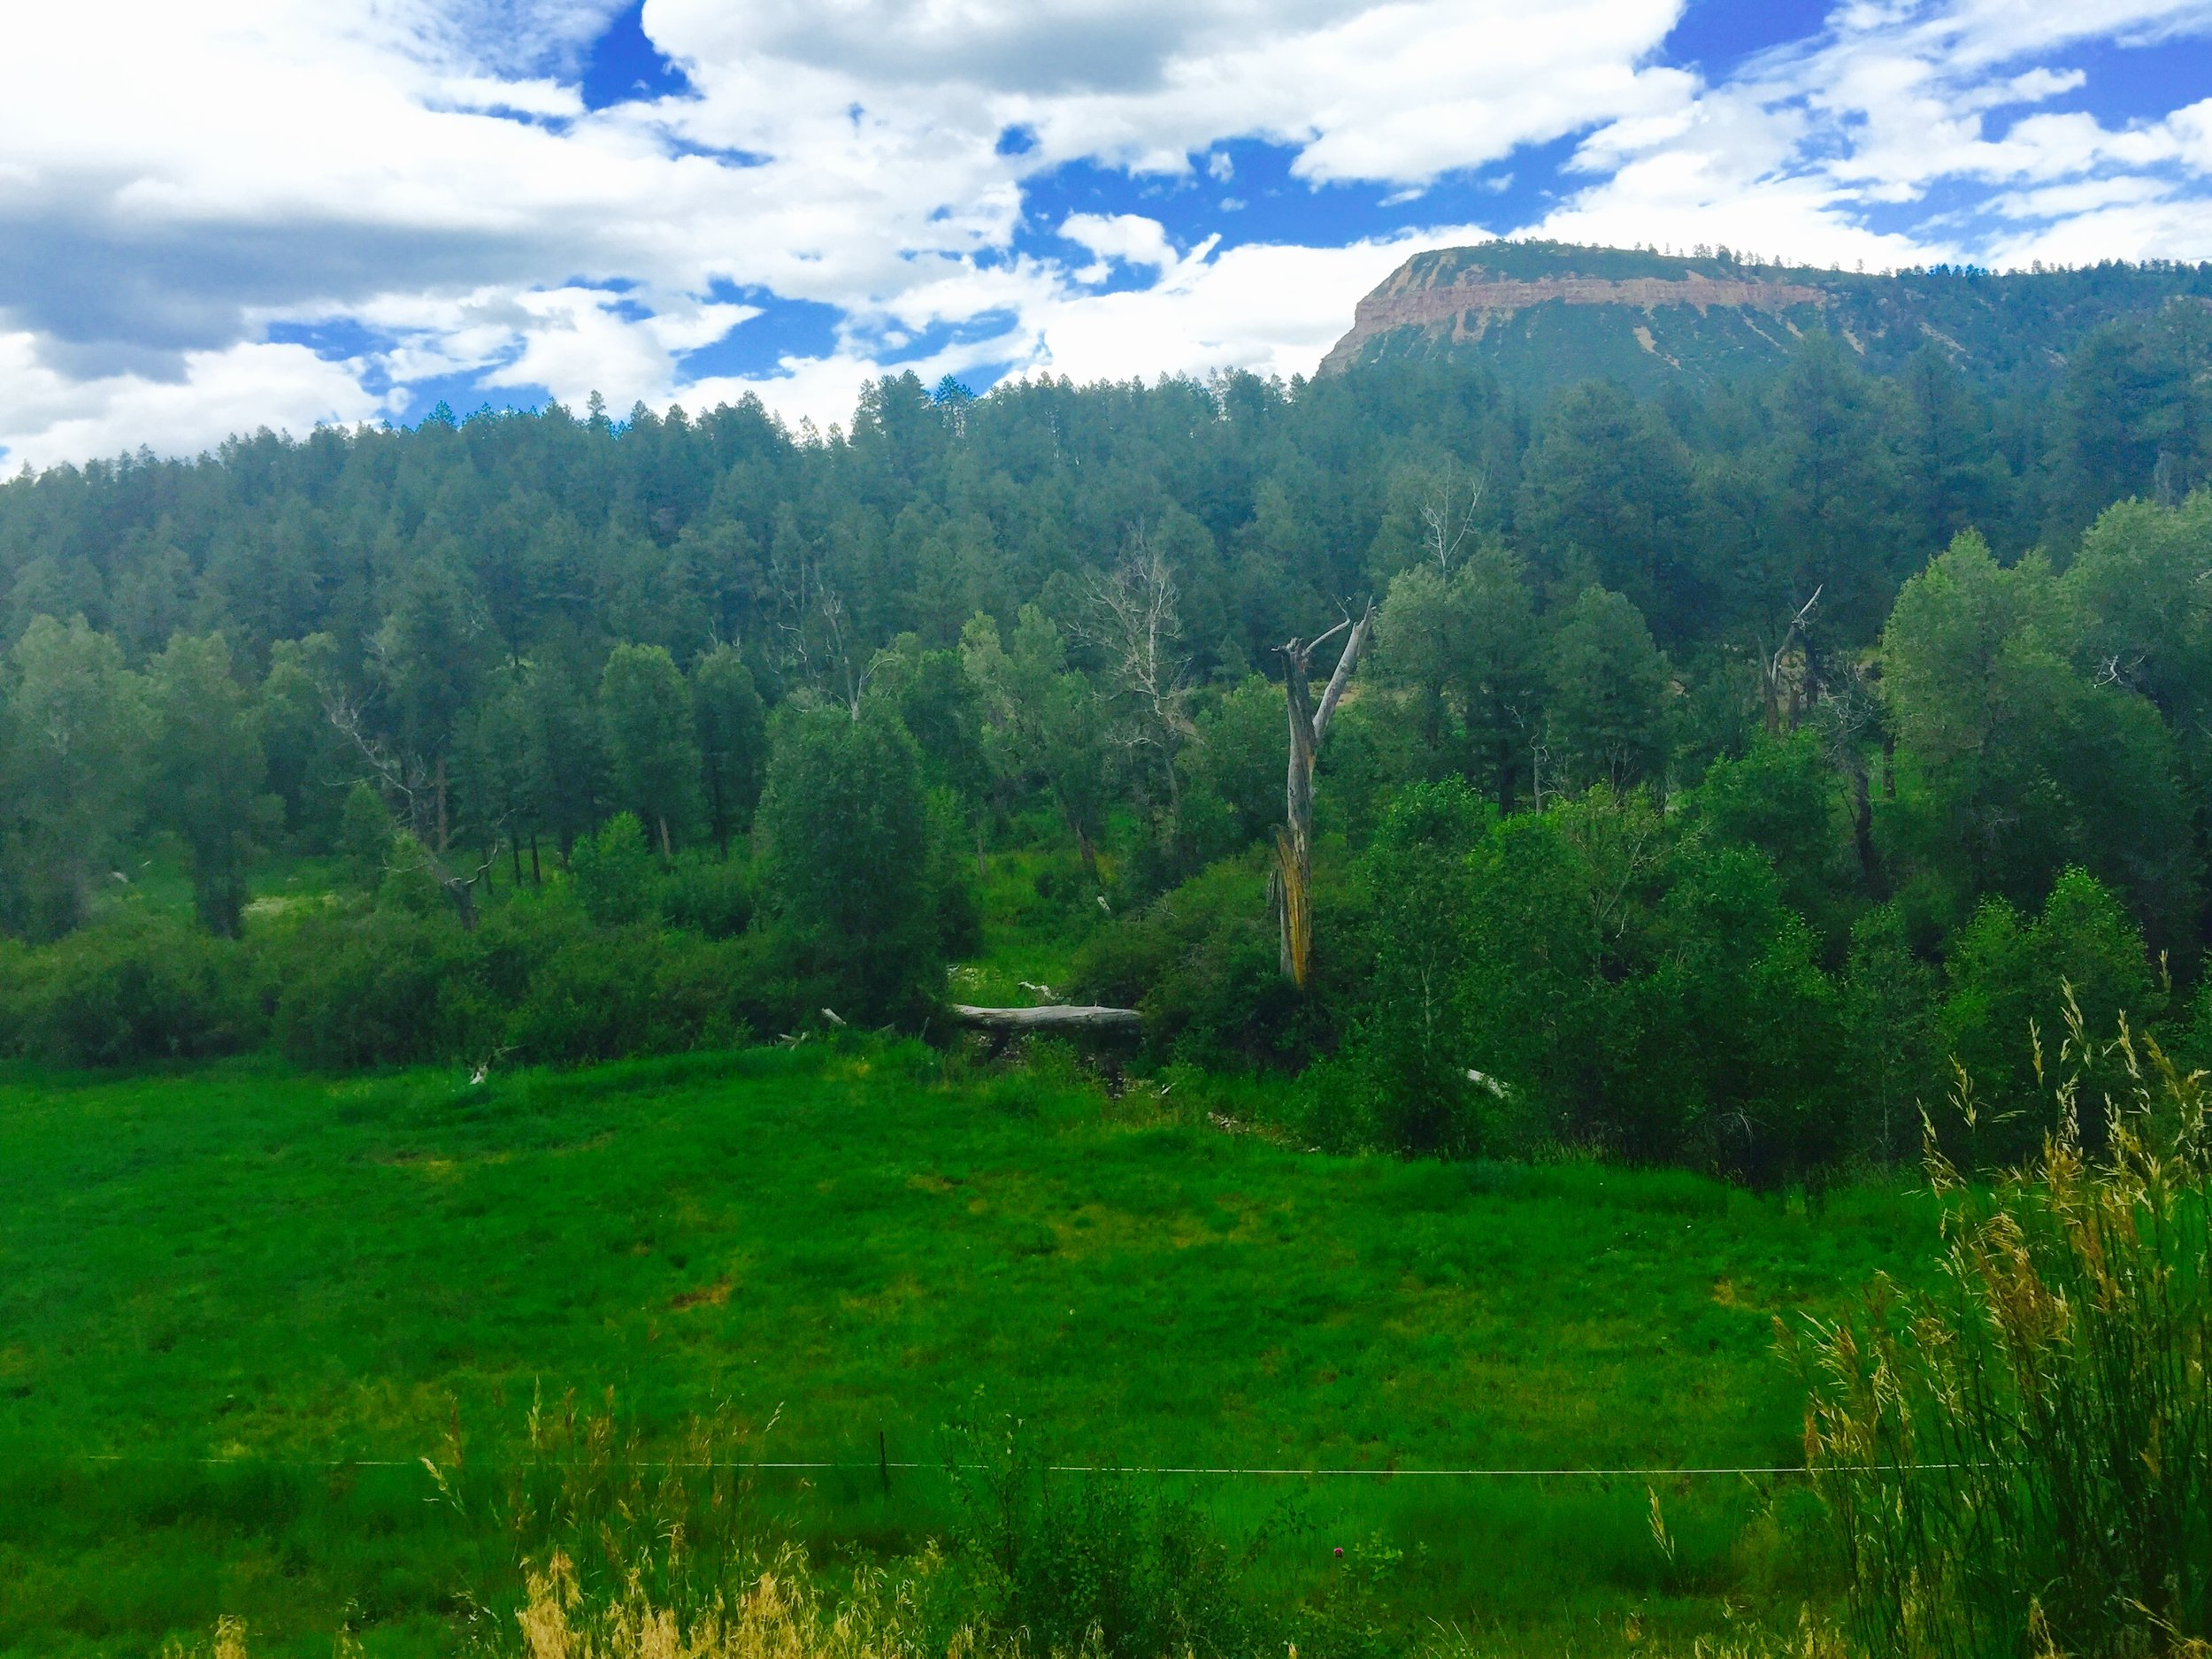 Land for sale in Durango, CO